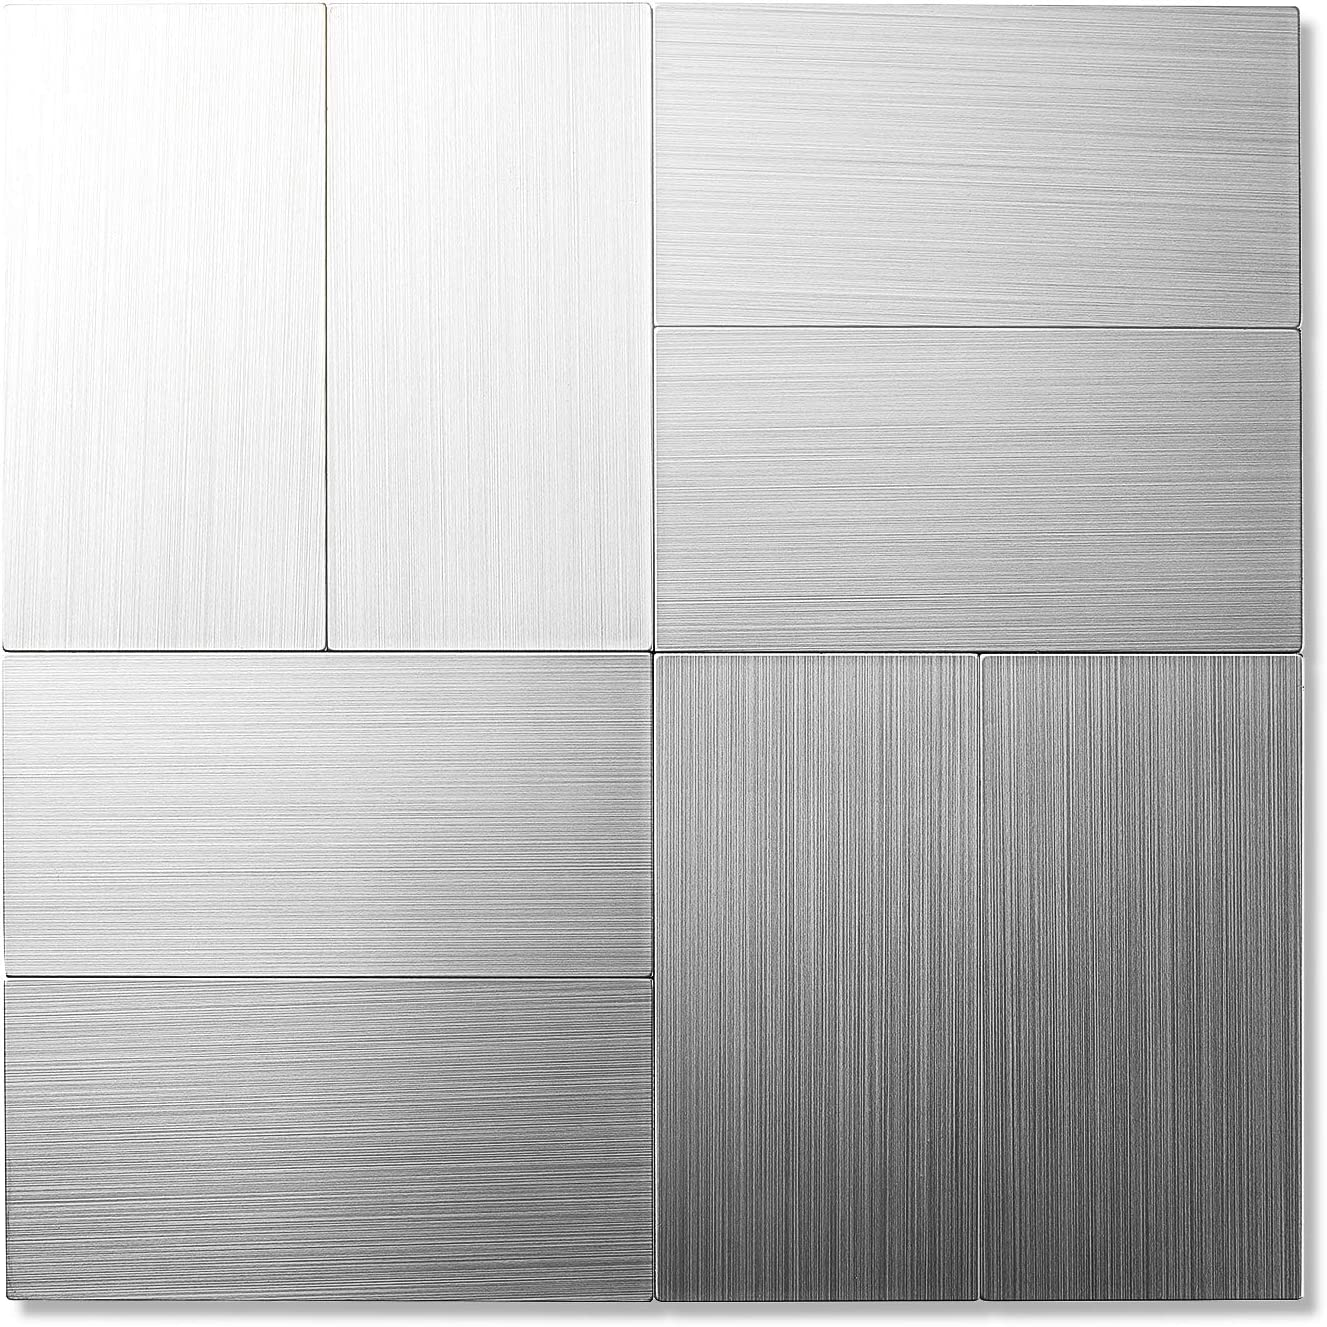 - Yipscazo Backsplash Tiles Kitchen, Wall Tiles For Kitchen